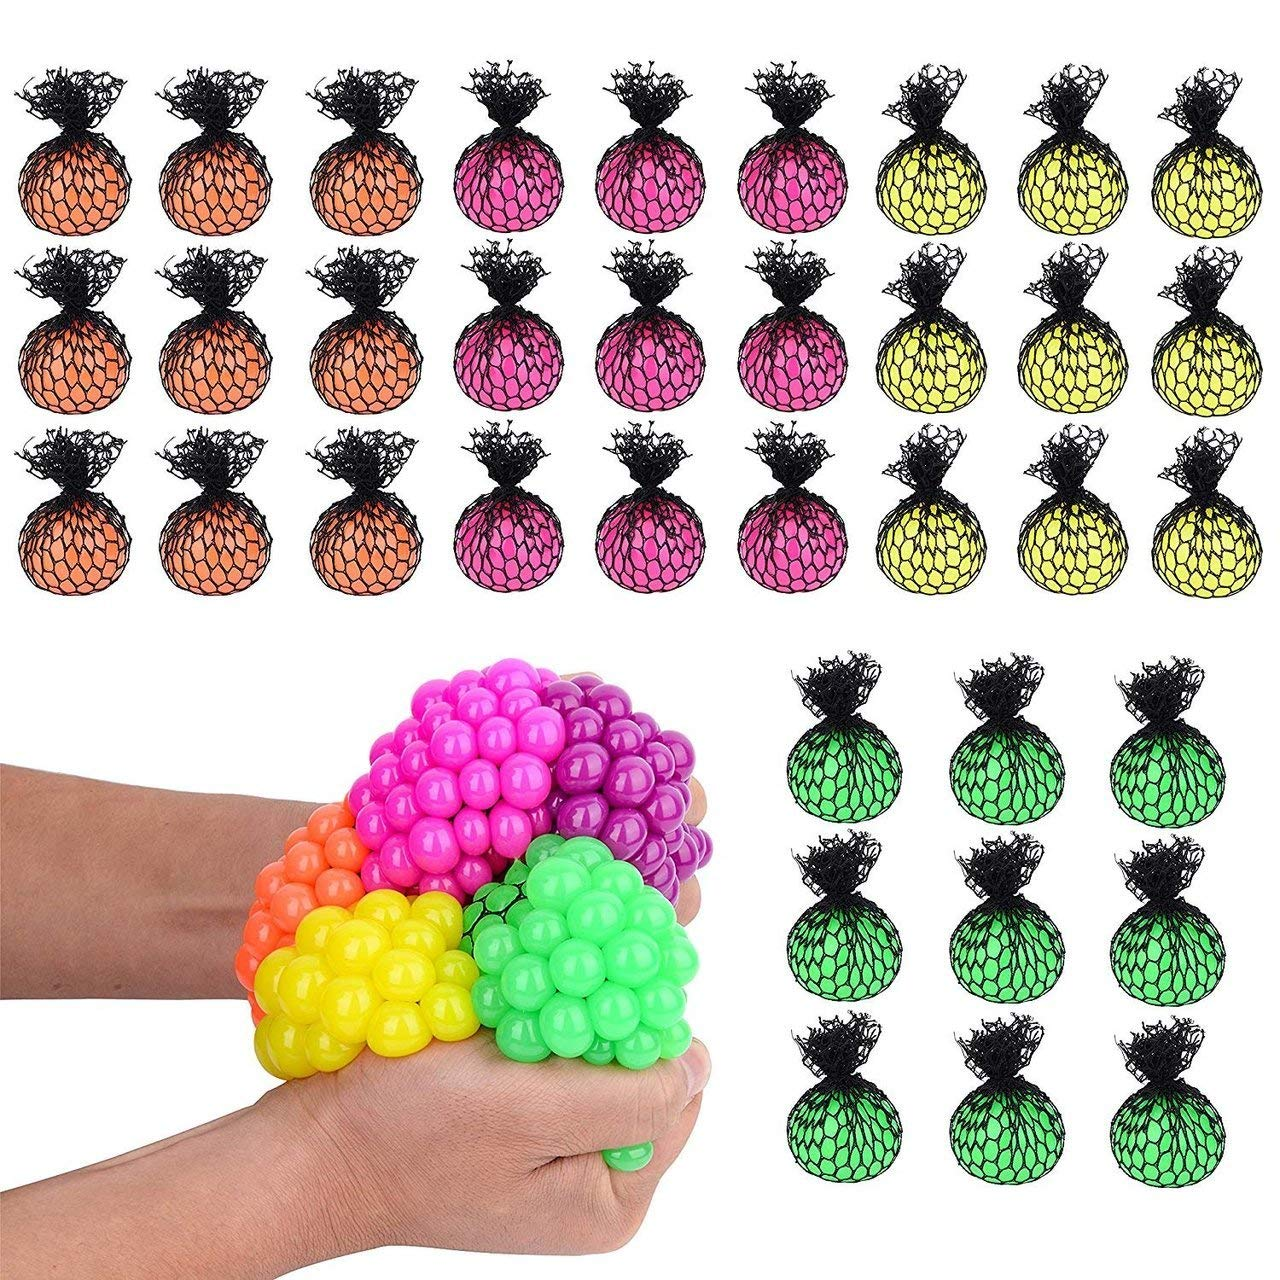 Totem World 36 Colorful Sewn Mesh Stress Balls - 2.4'' Squishy Fidget Toy Perfect for Kids and Adults Materials for Lasting Use - Squeeze Balls for Anxiety and Concentration - Great Party Favors